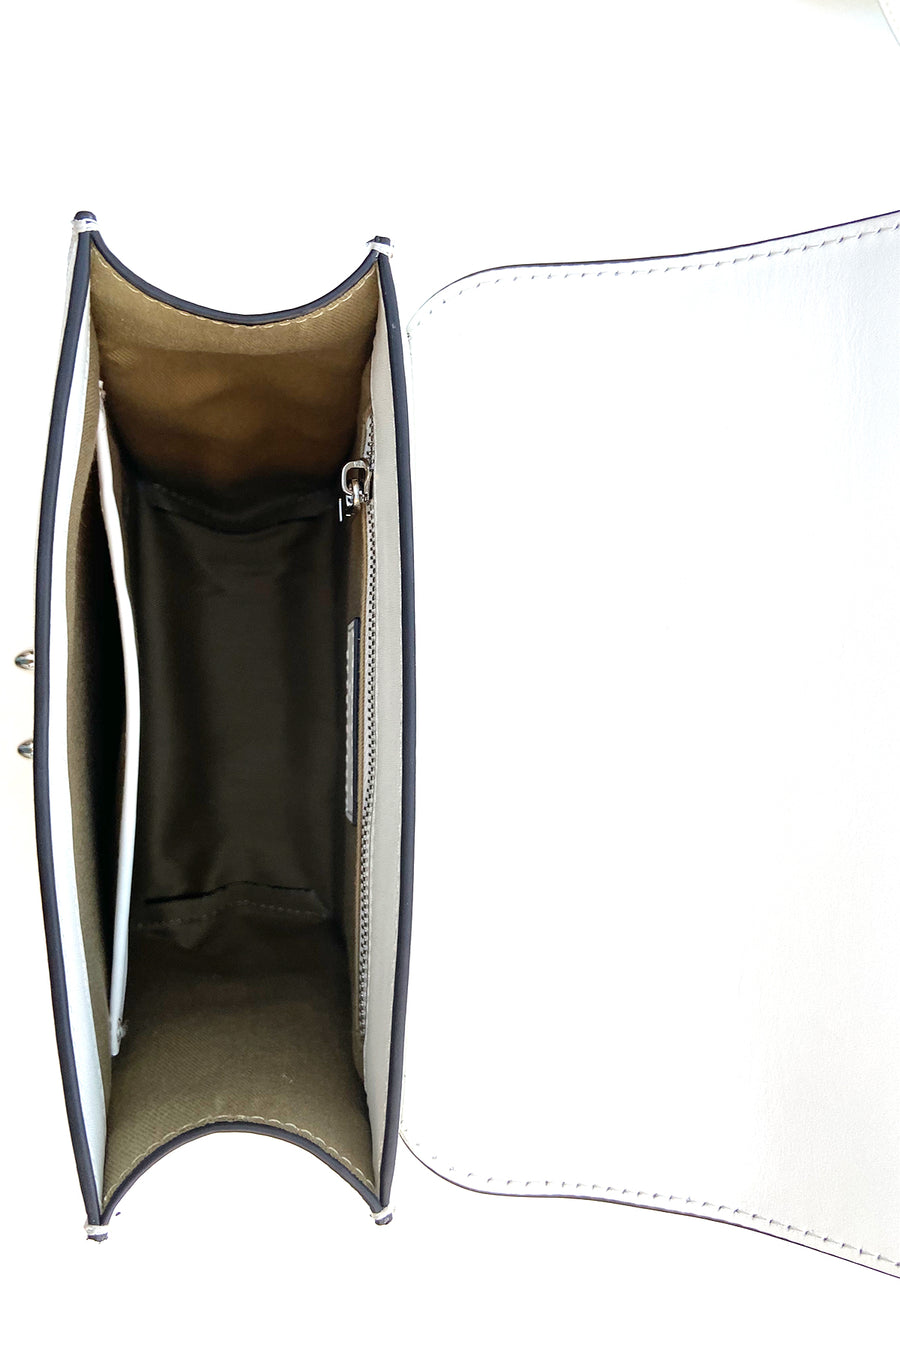 White leather purse | SUSU Handbags